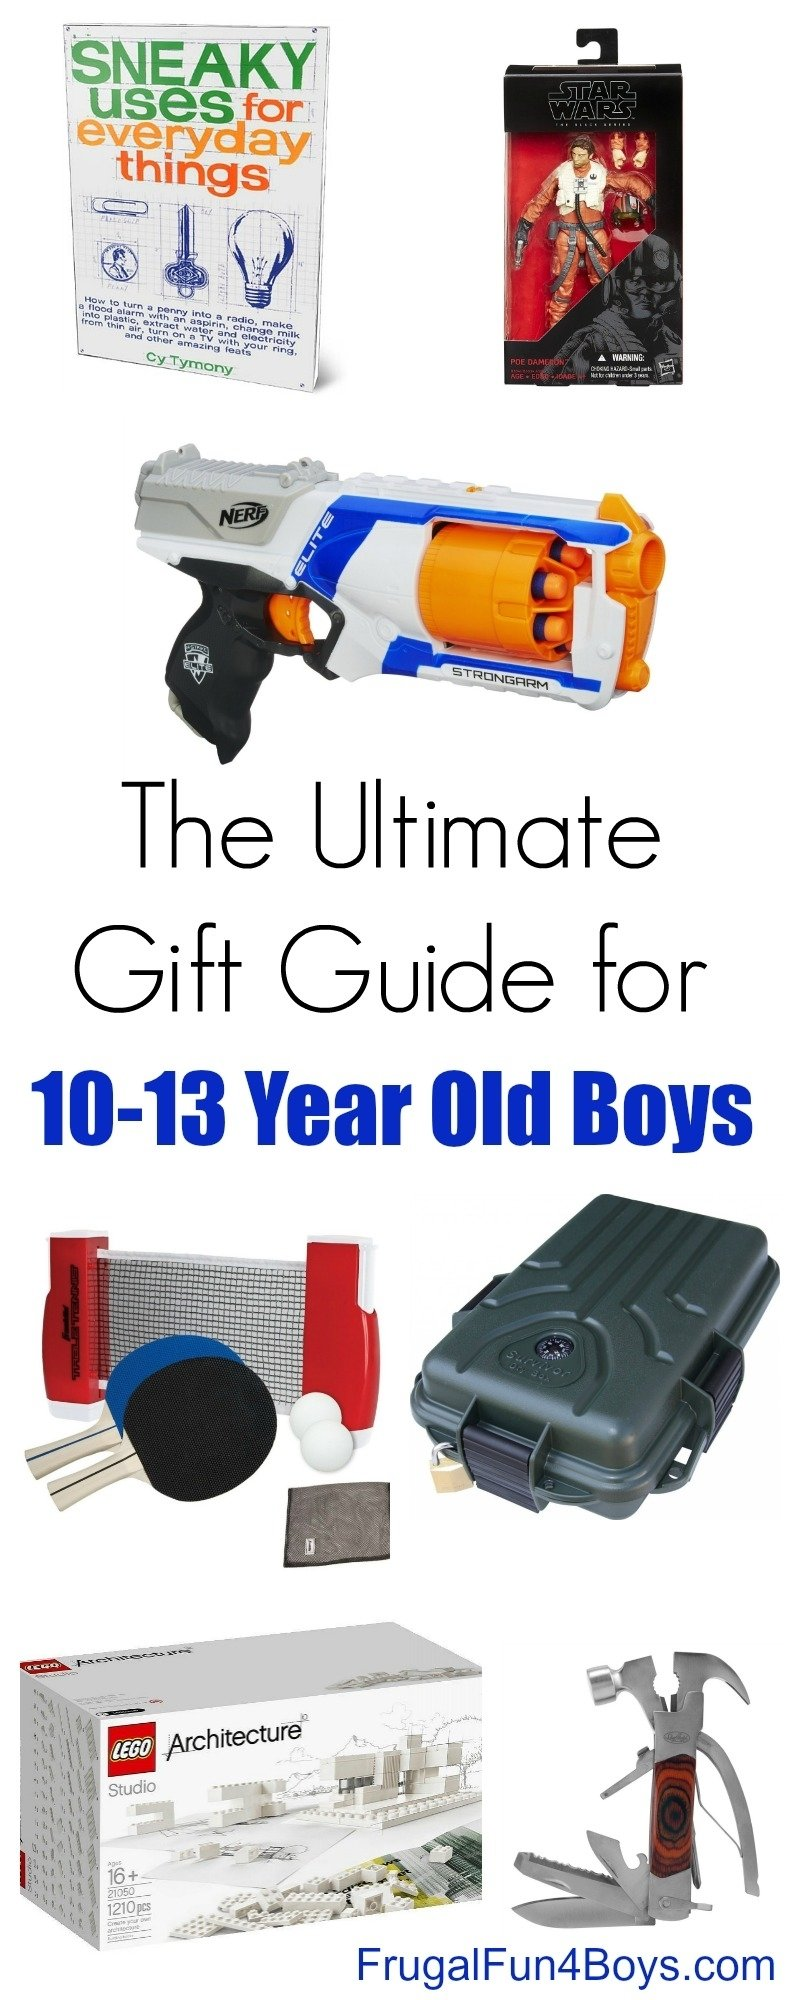 10 Elegant 13 Year Old Boy Gift Ideas gift ideas for 10 to 13 year old boys 15